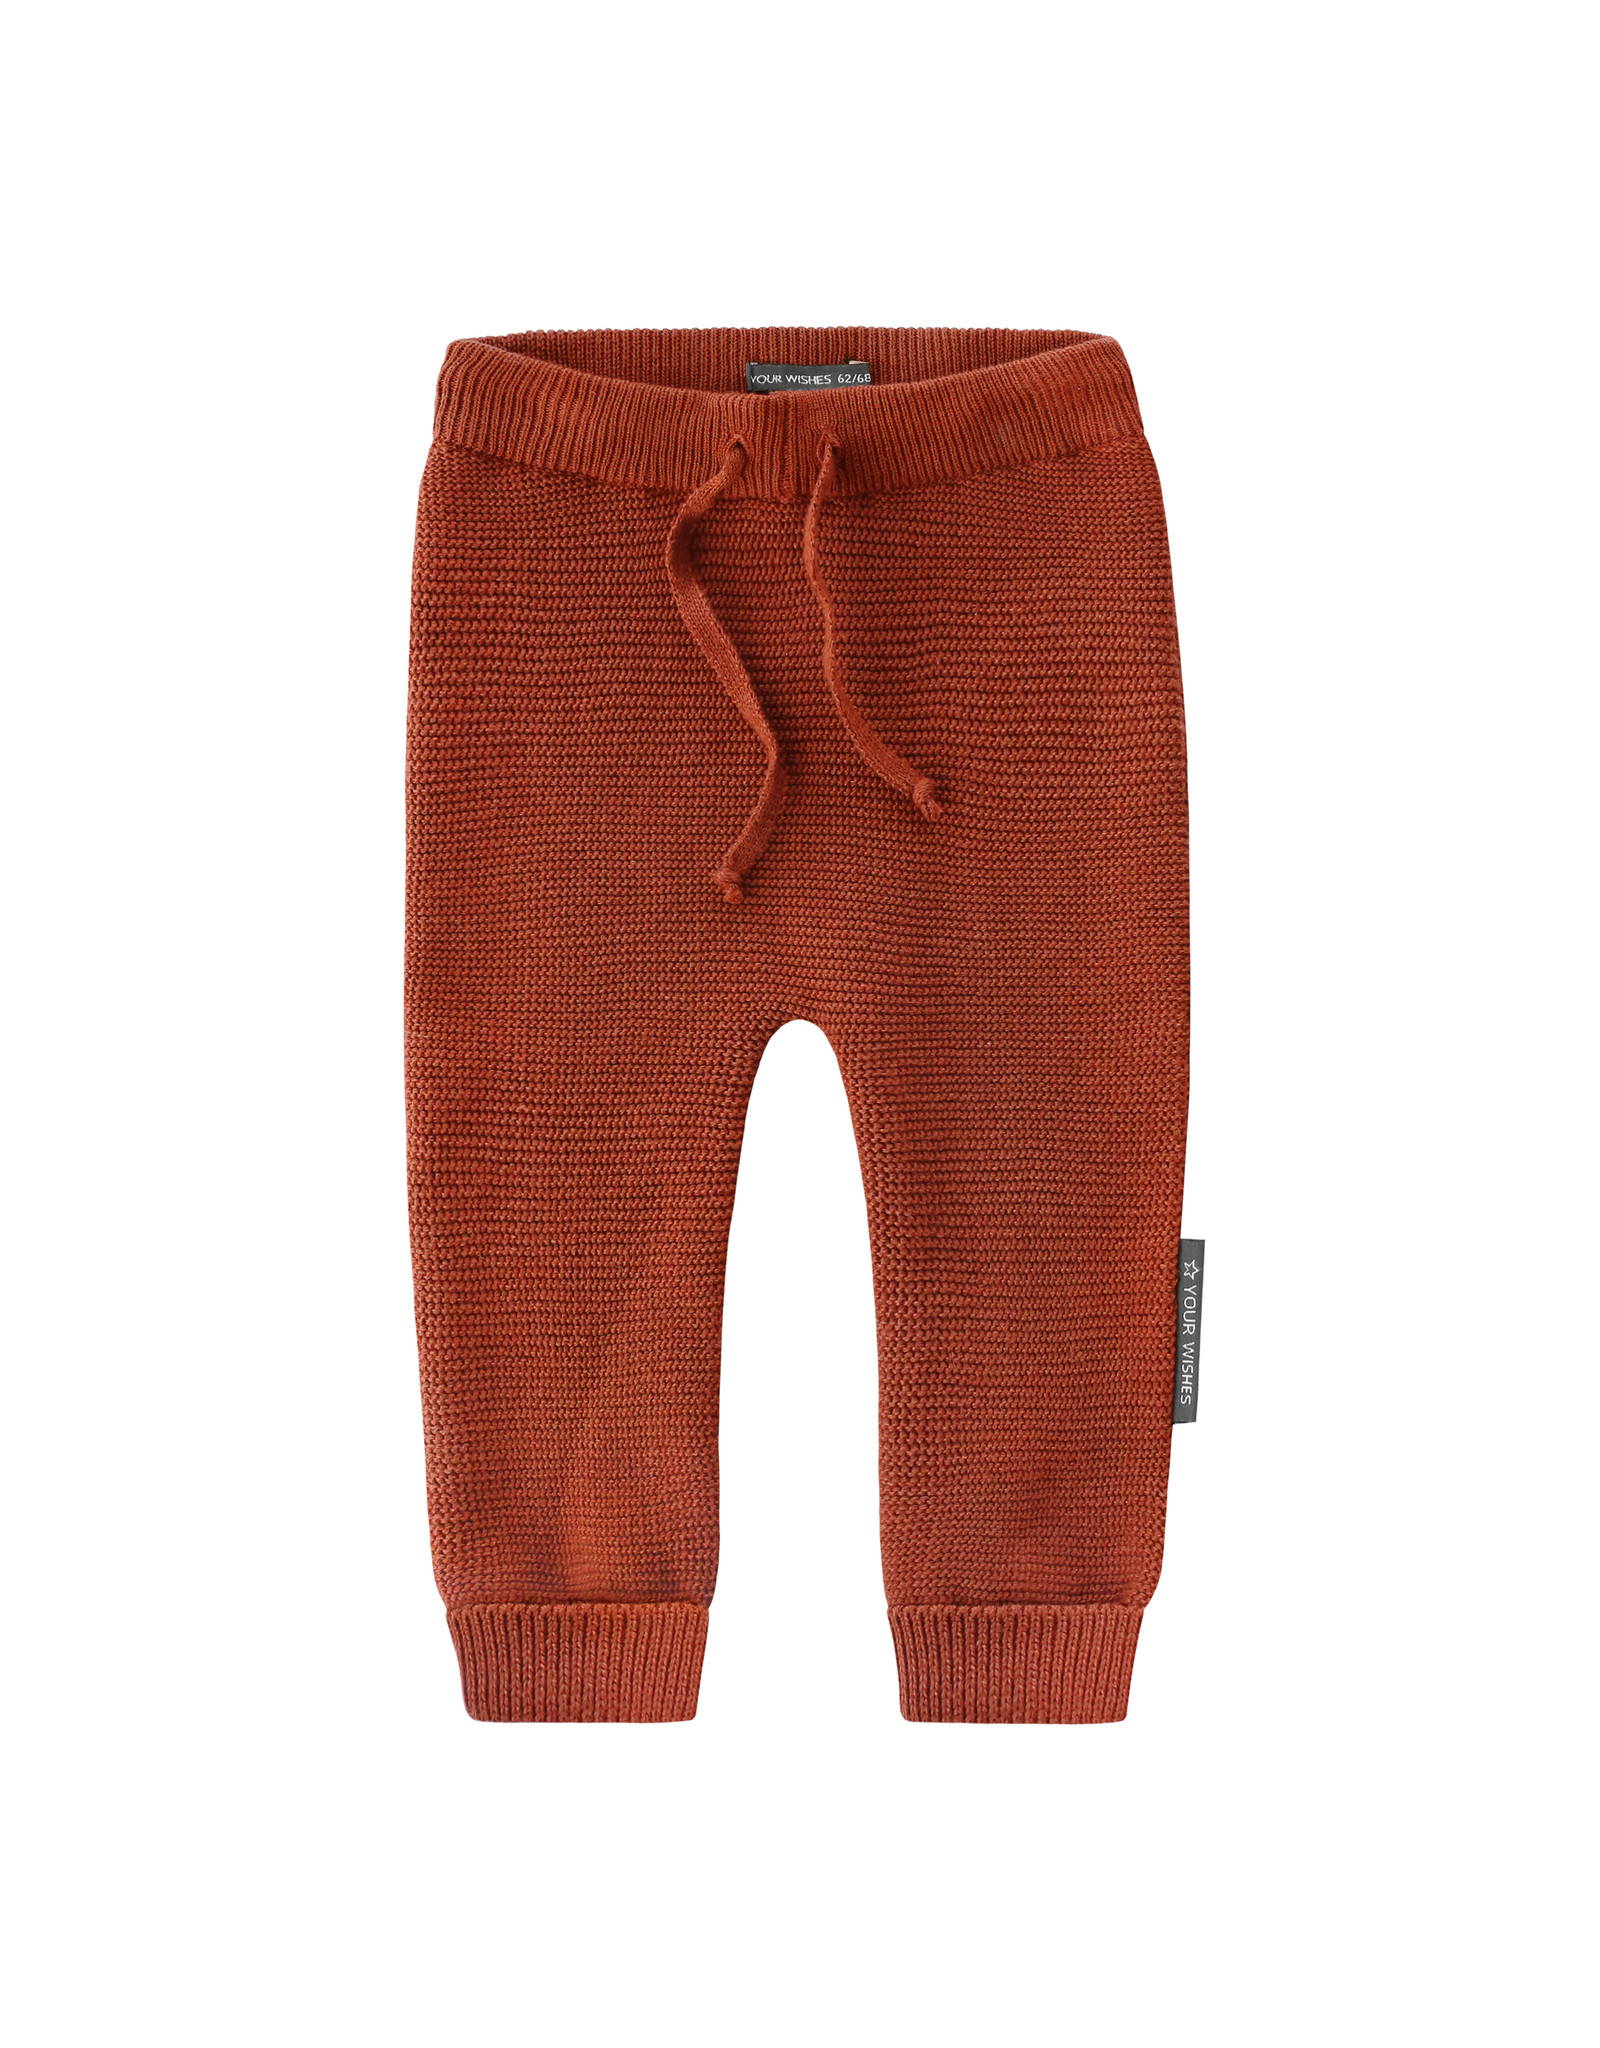 Your Wishes Knit   Pants